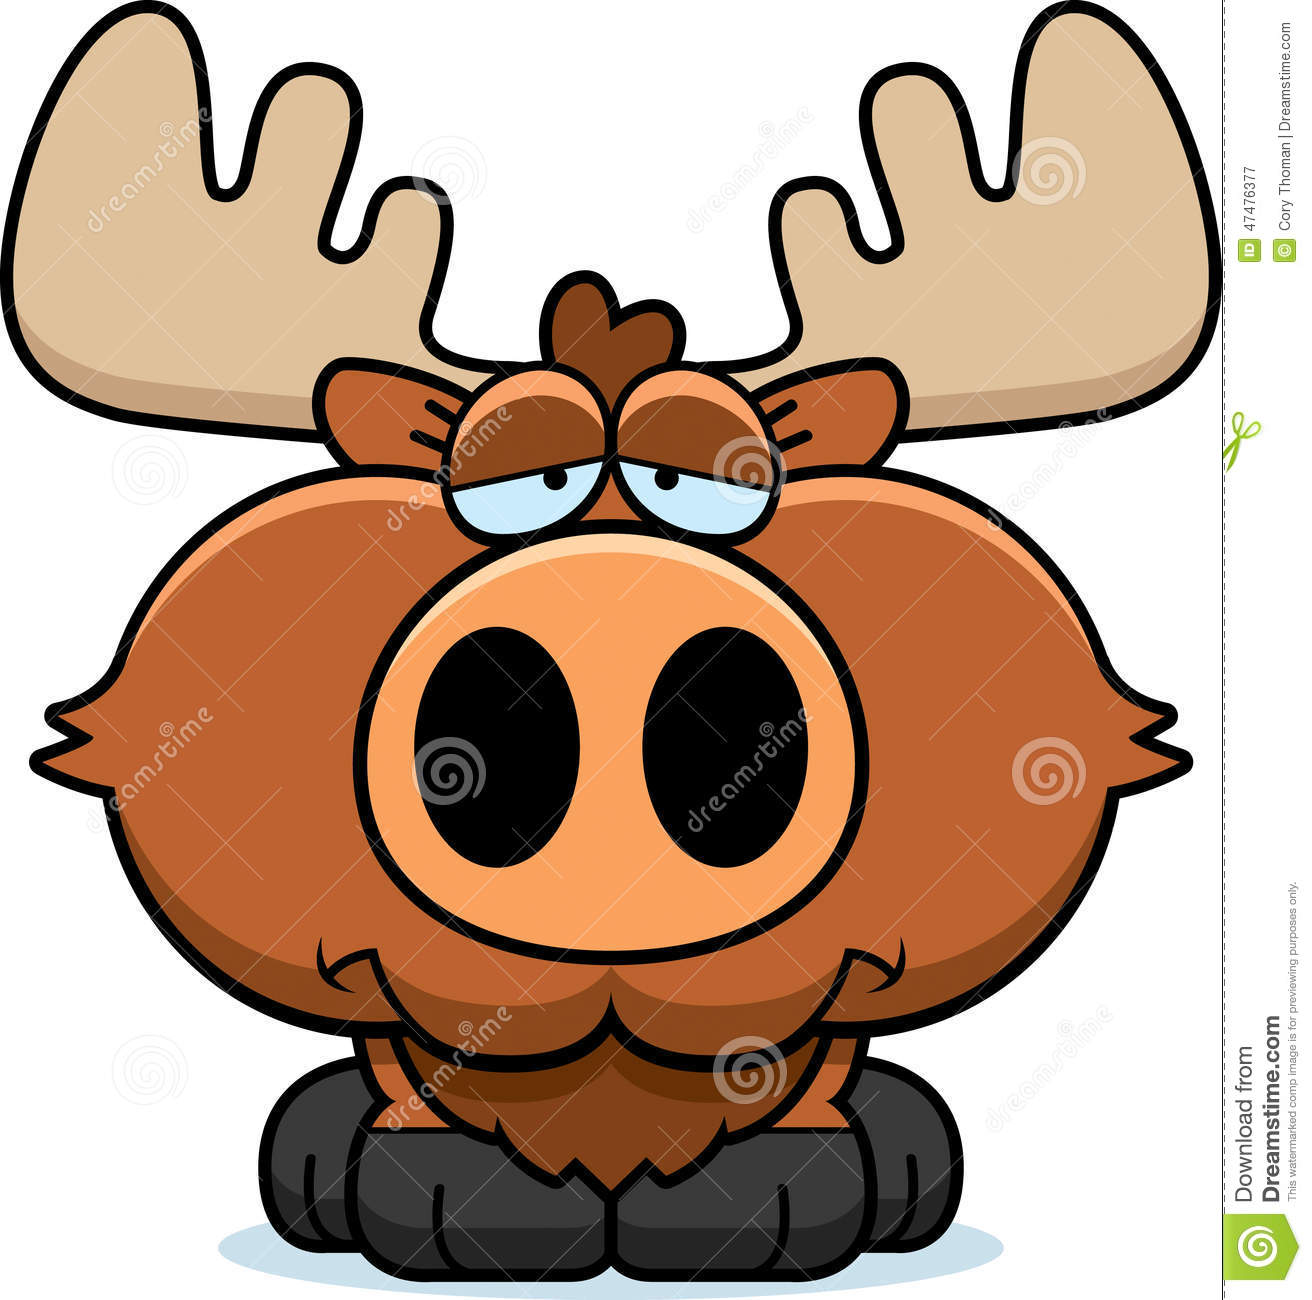 Cartoon Illustration Of A Moose With A Sad Expression